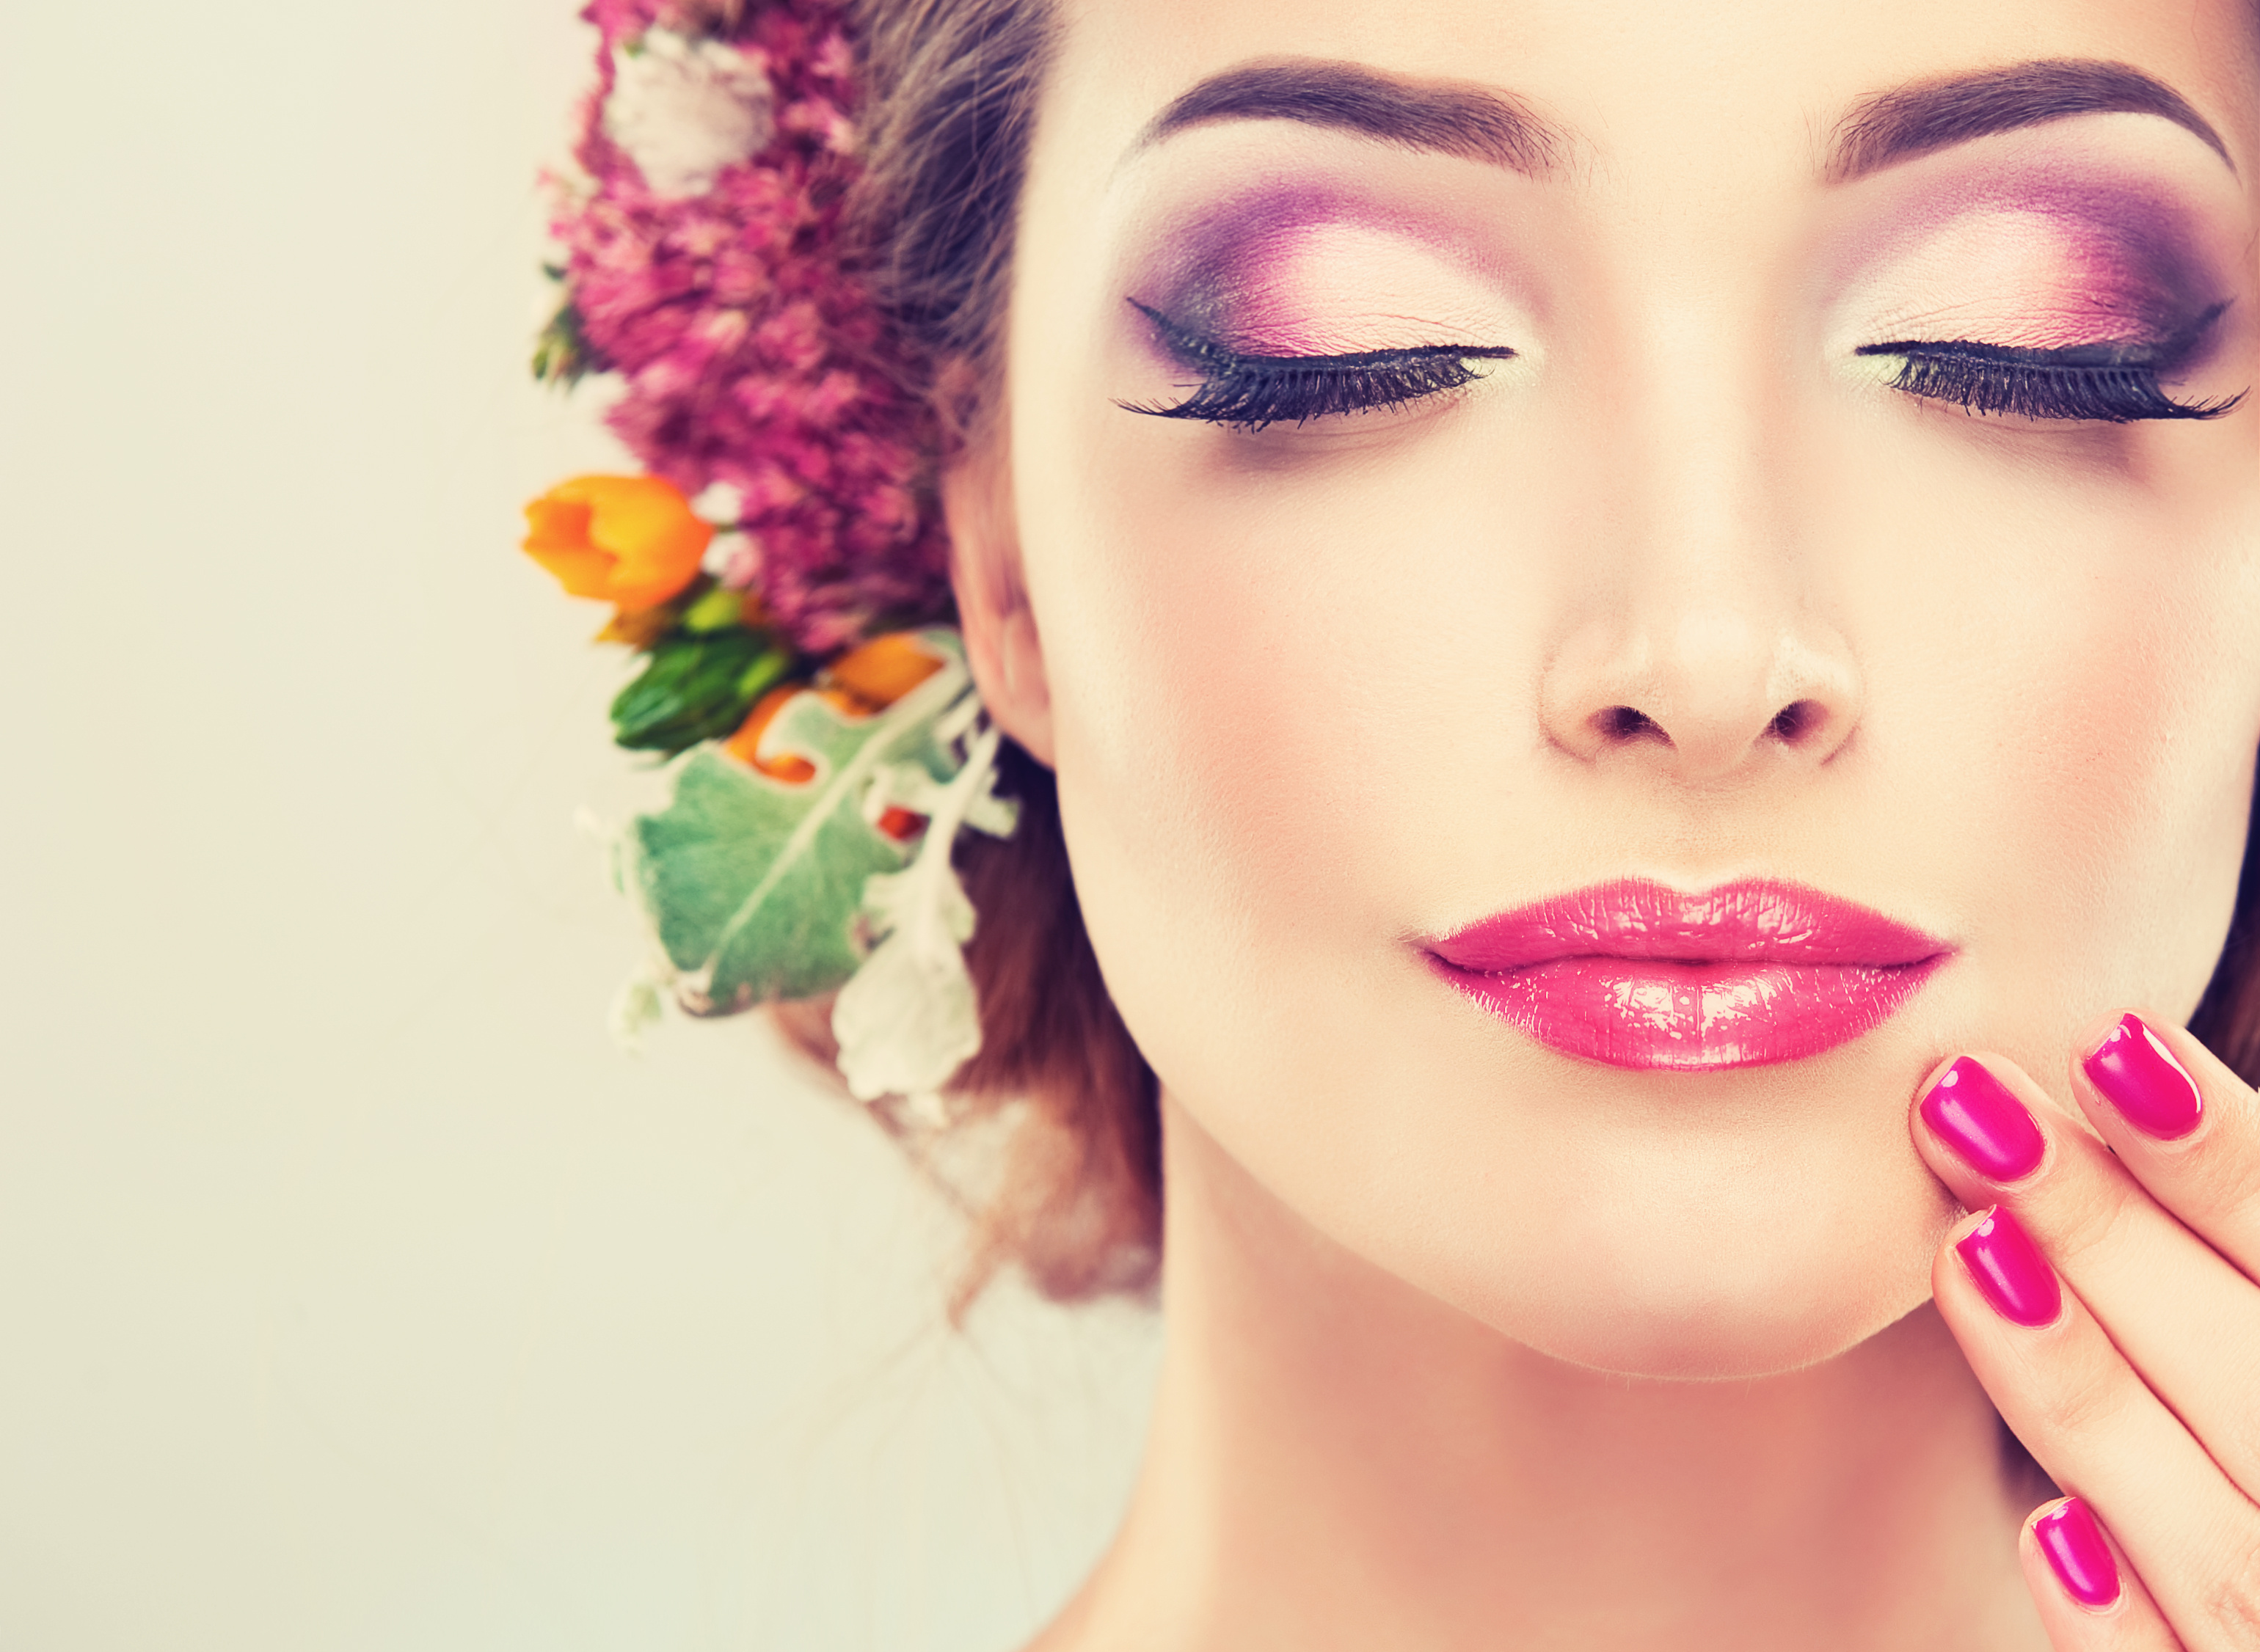 What is The Latest Trend About Blush Make Up?